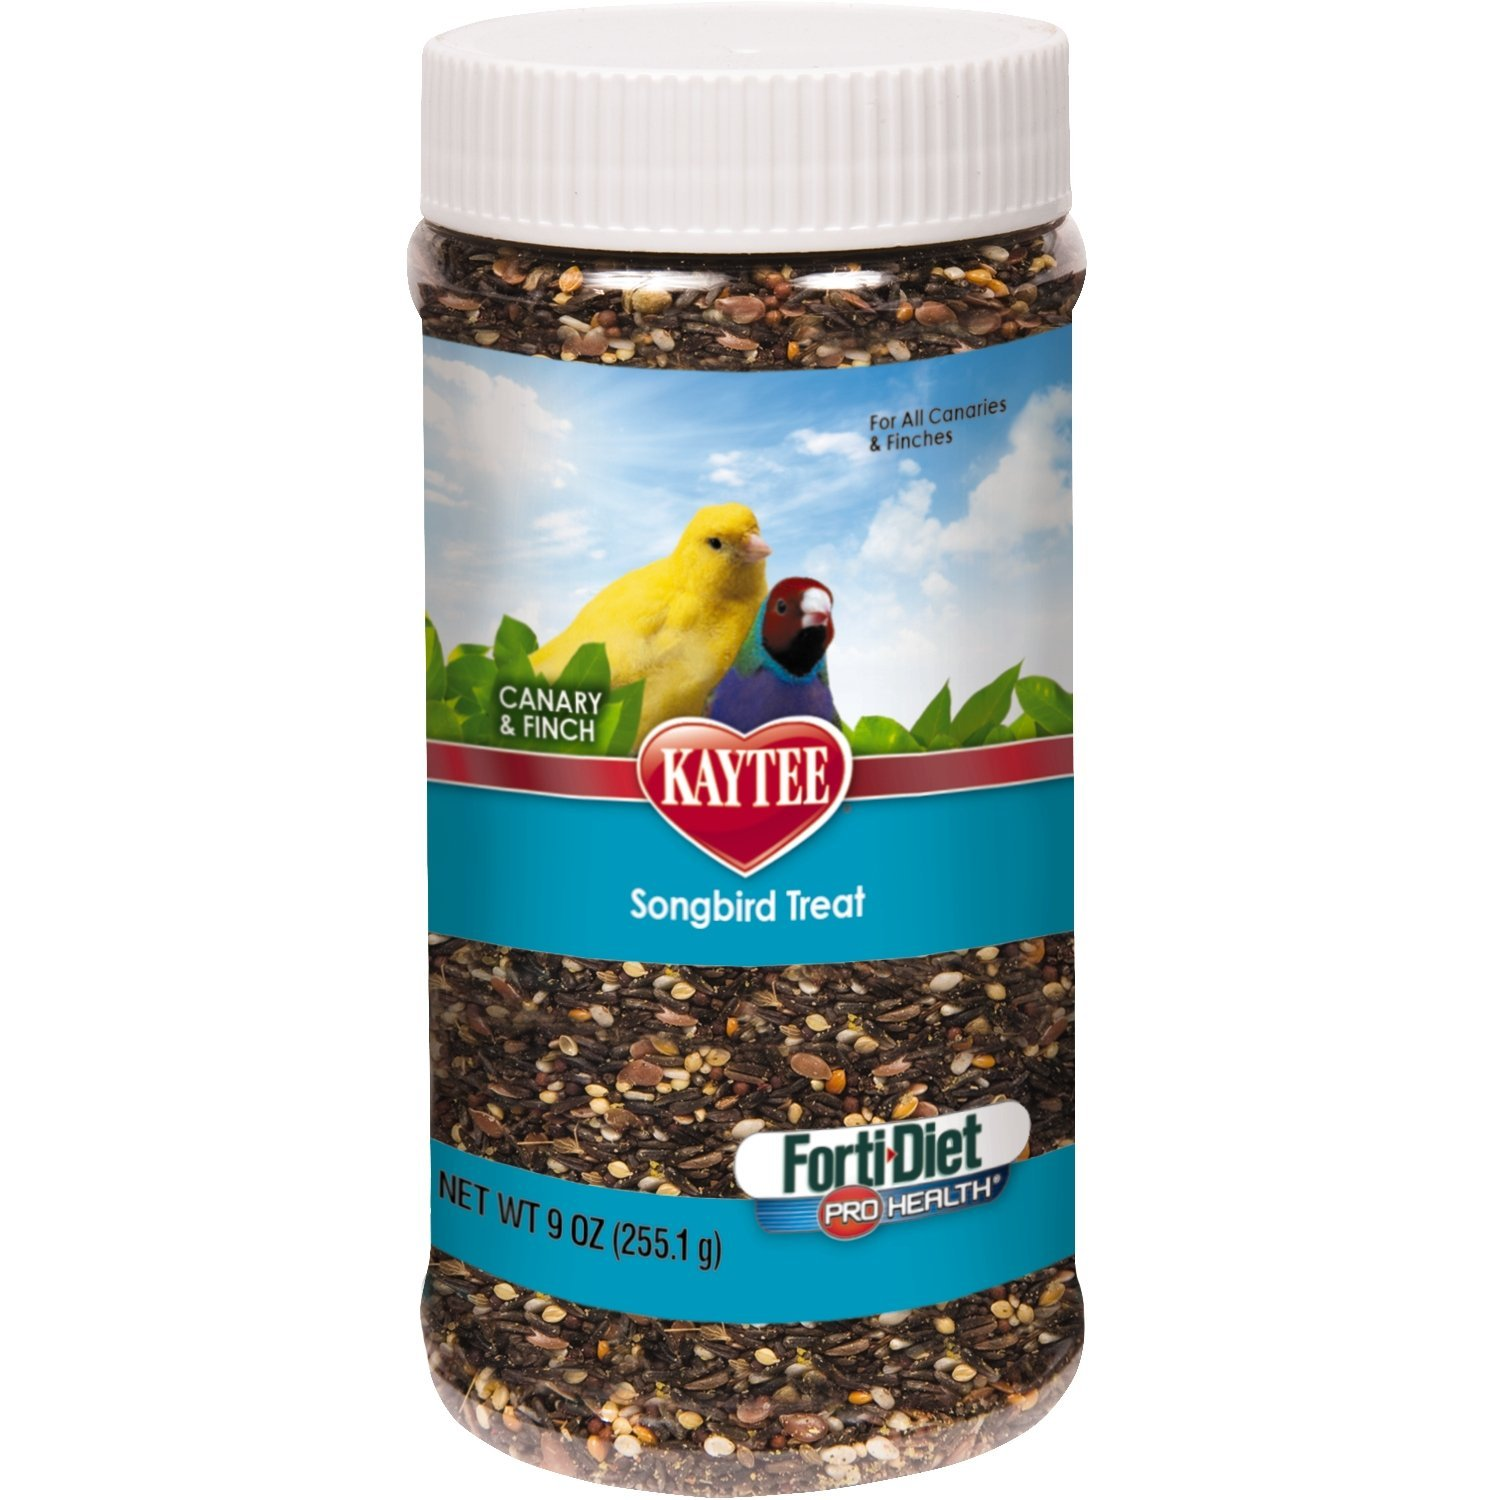 Forti-Diet Pro Health Canary and Finch Songbird Treat, 9-oz jar, Tasty, Nutritious Treat By Kaytee